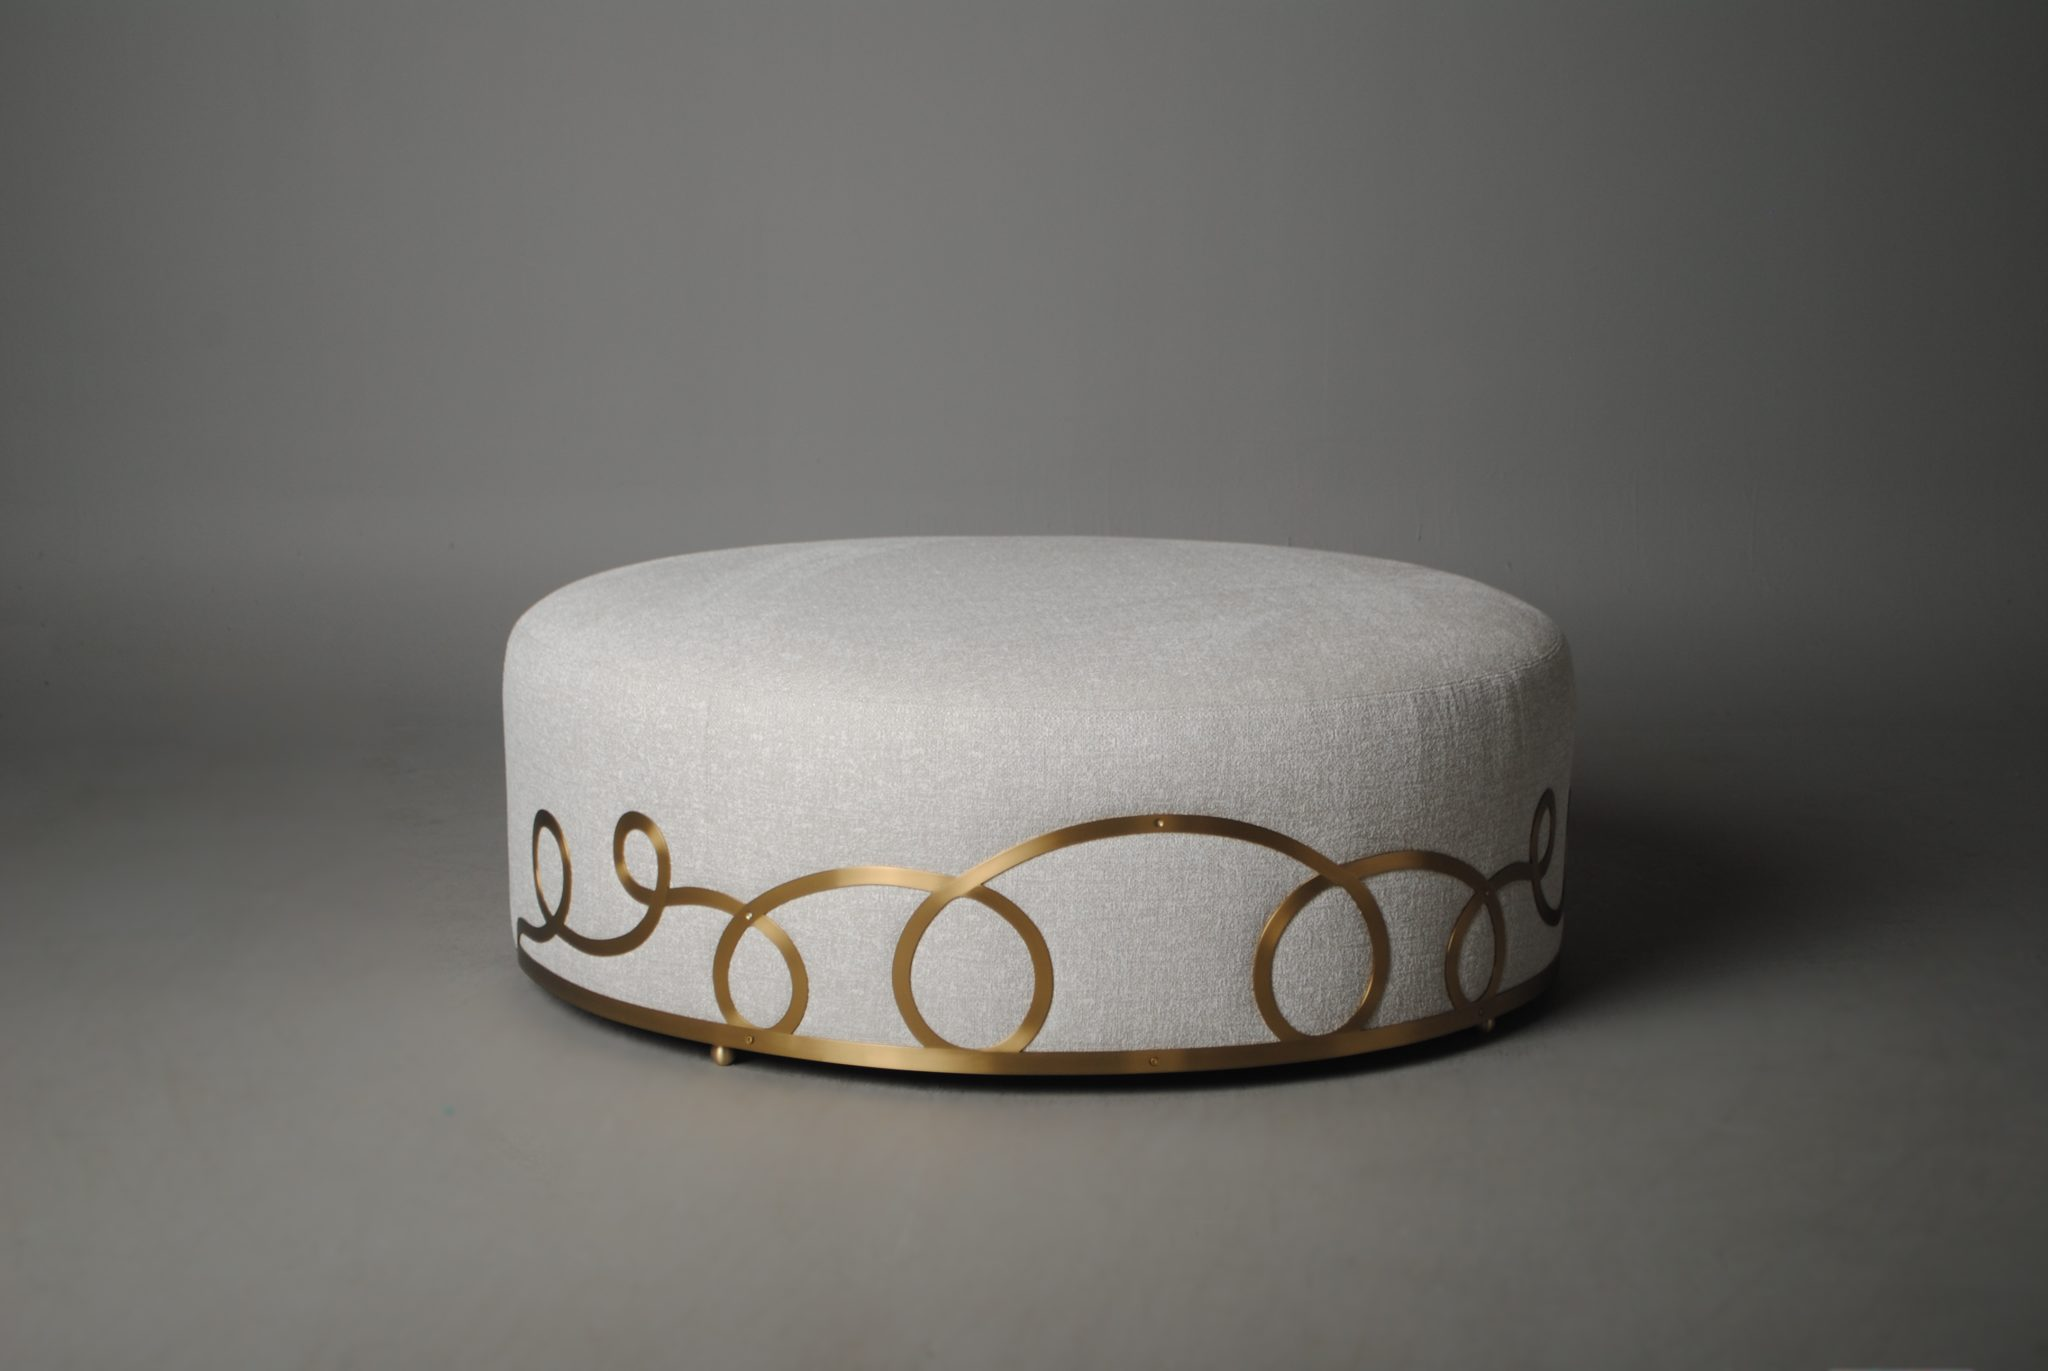 Known for his boldness and metallic touches, Larry Laslo is launching several pieces with Chaddock including the Loop de Loop Ottoman, a 50-inch upholstered round ottoman with a whimsical flat brass loop design.